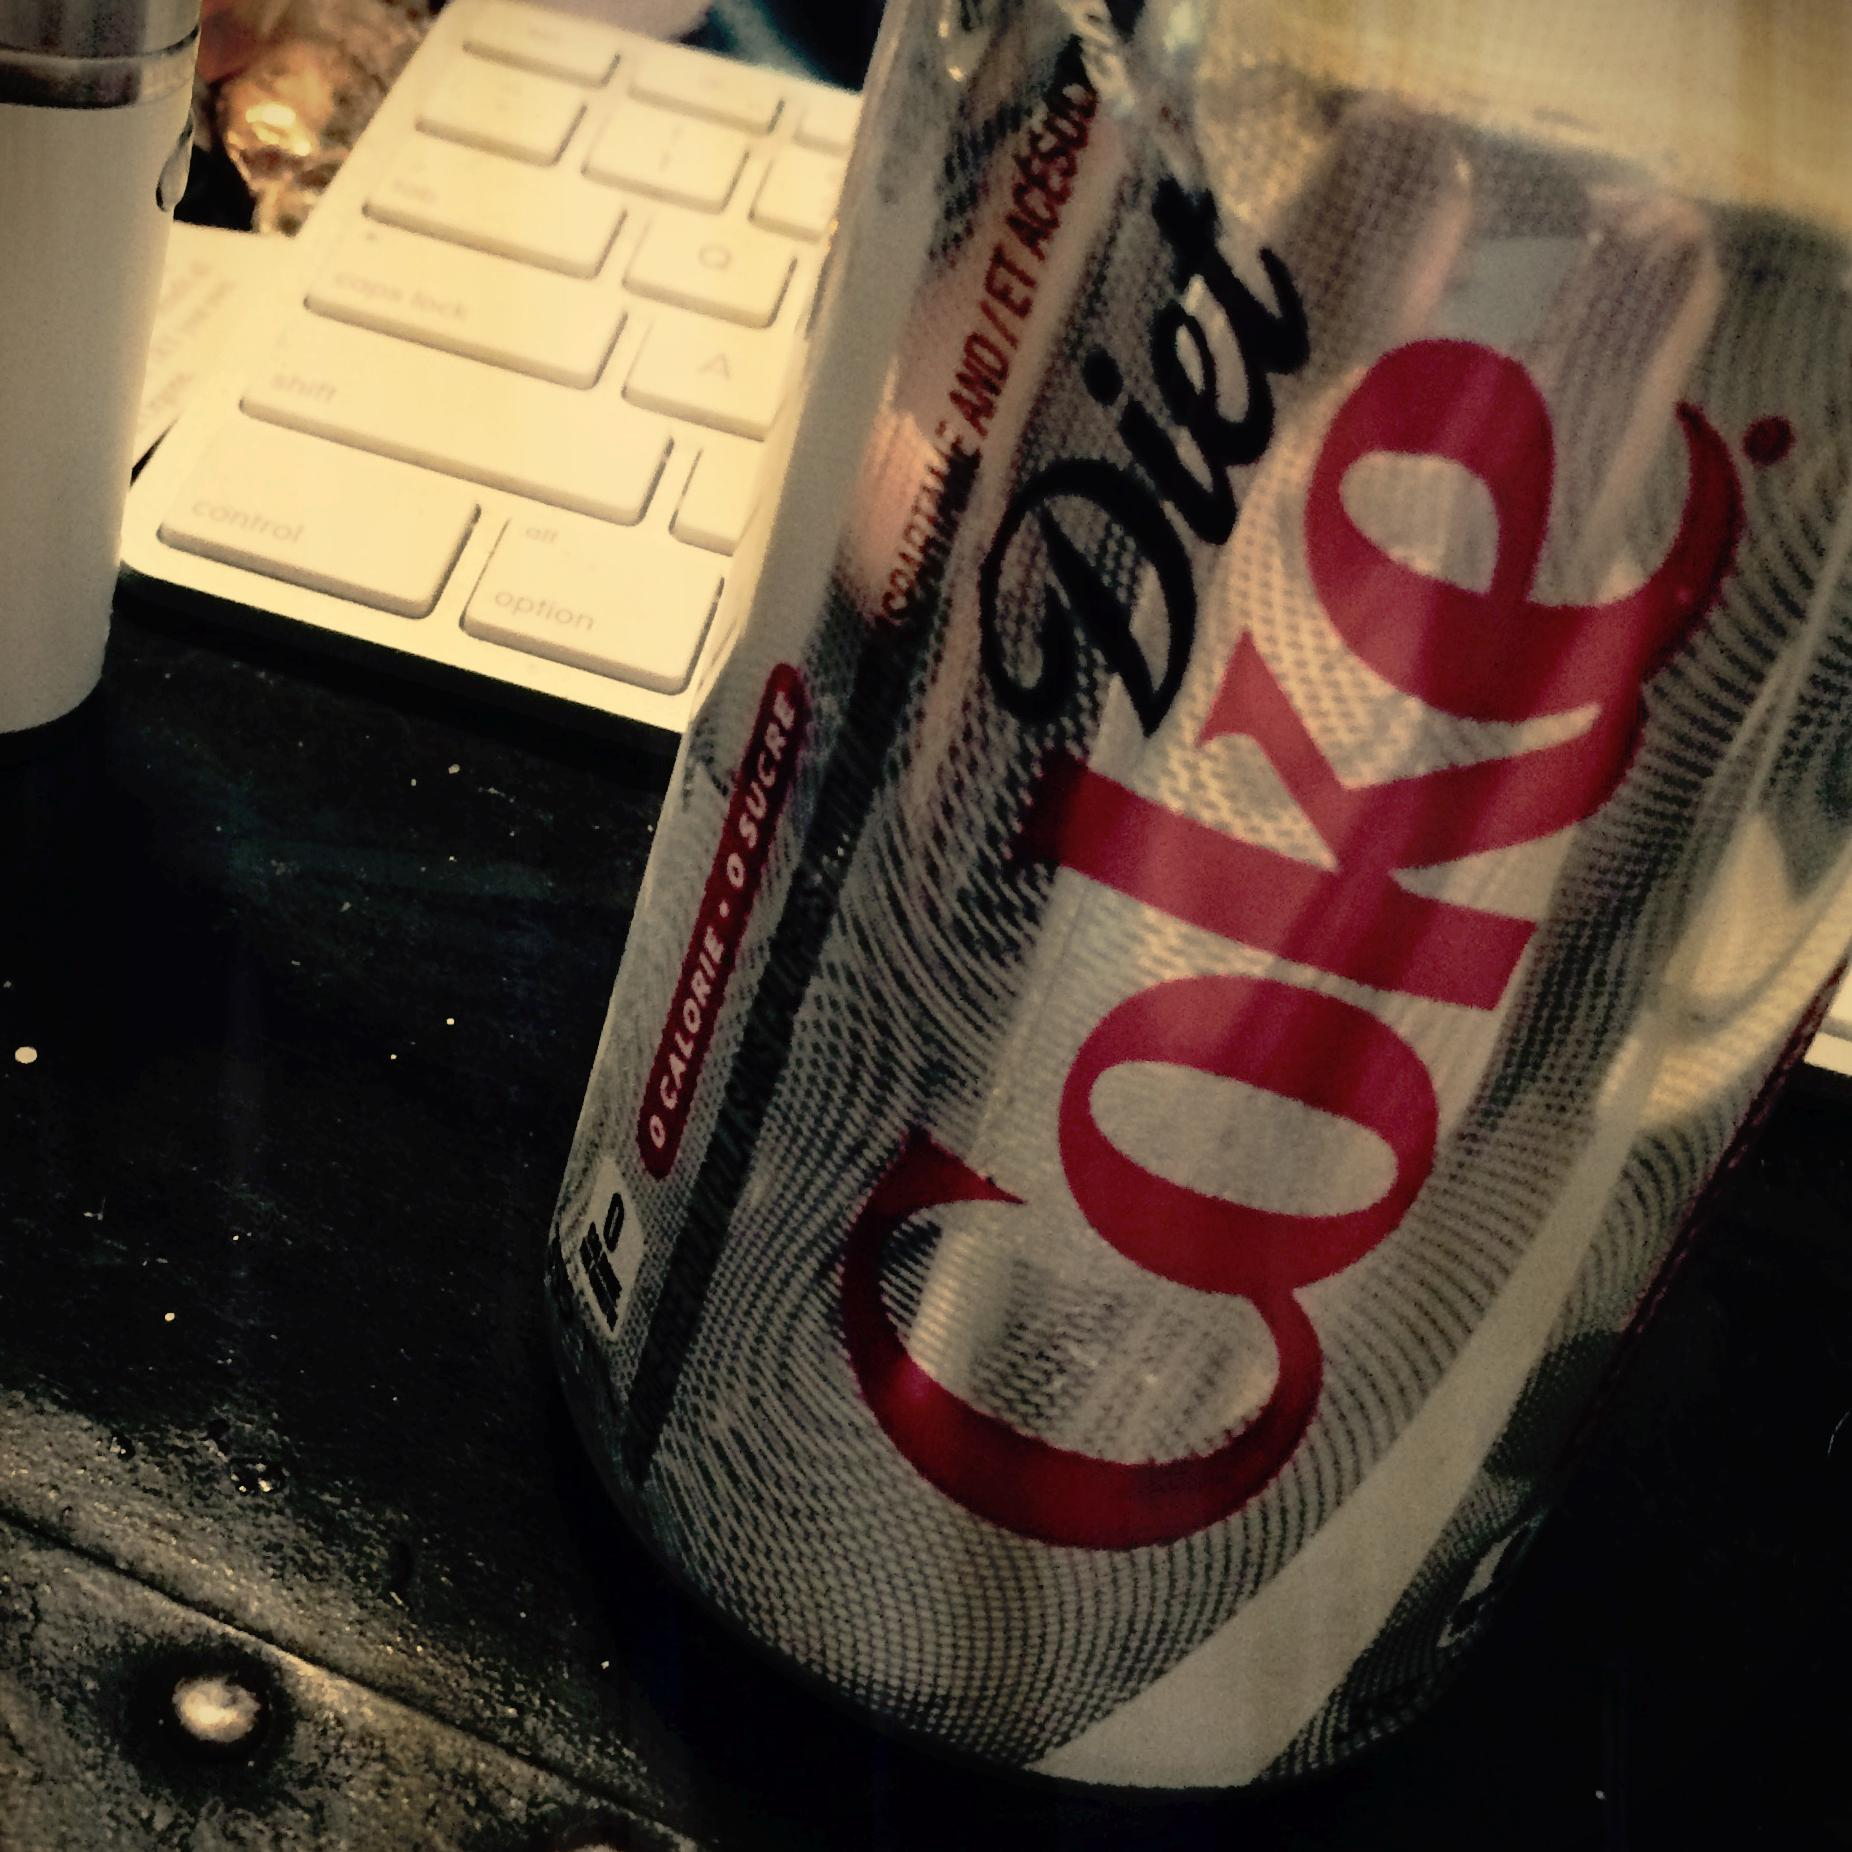 This Is The End: Diet Coke